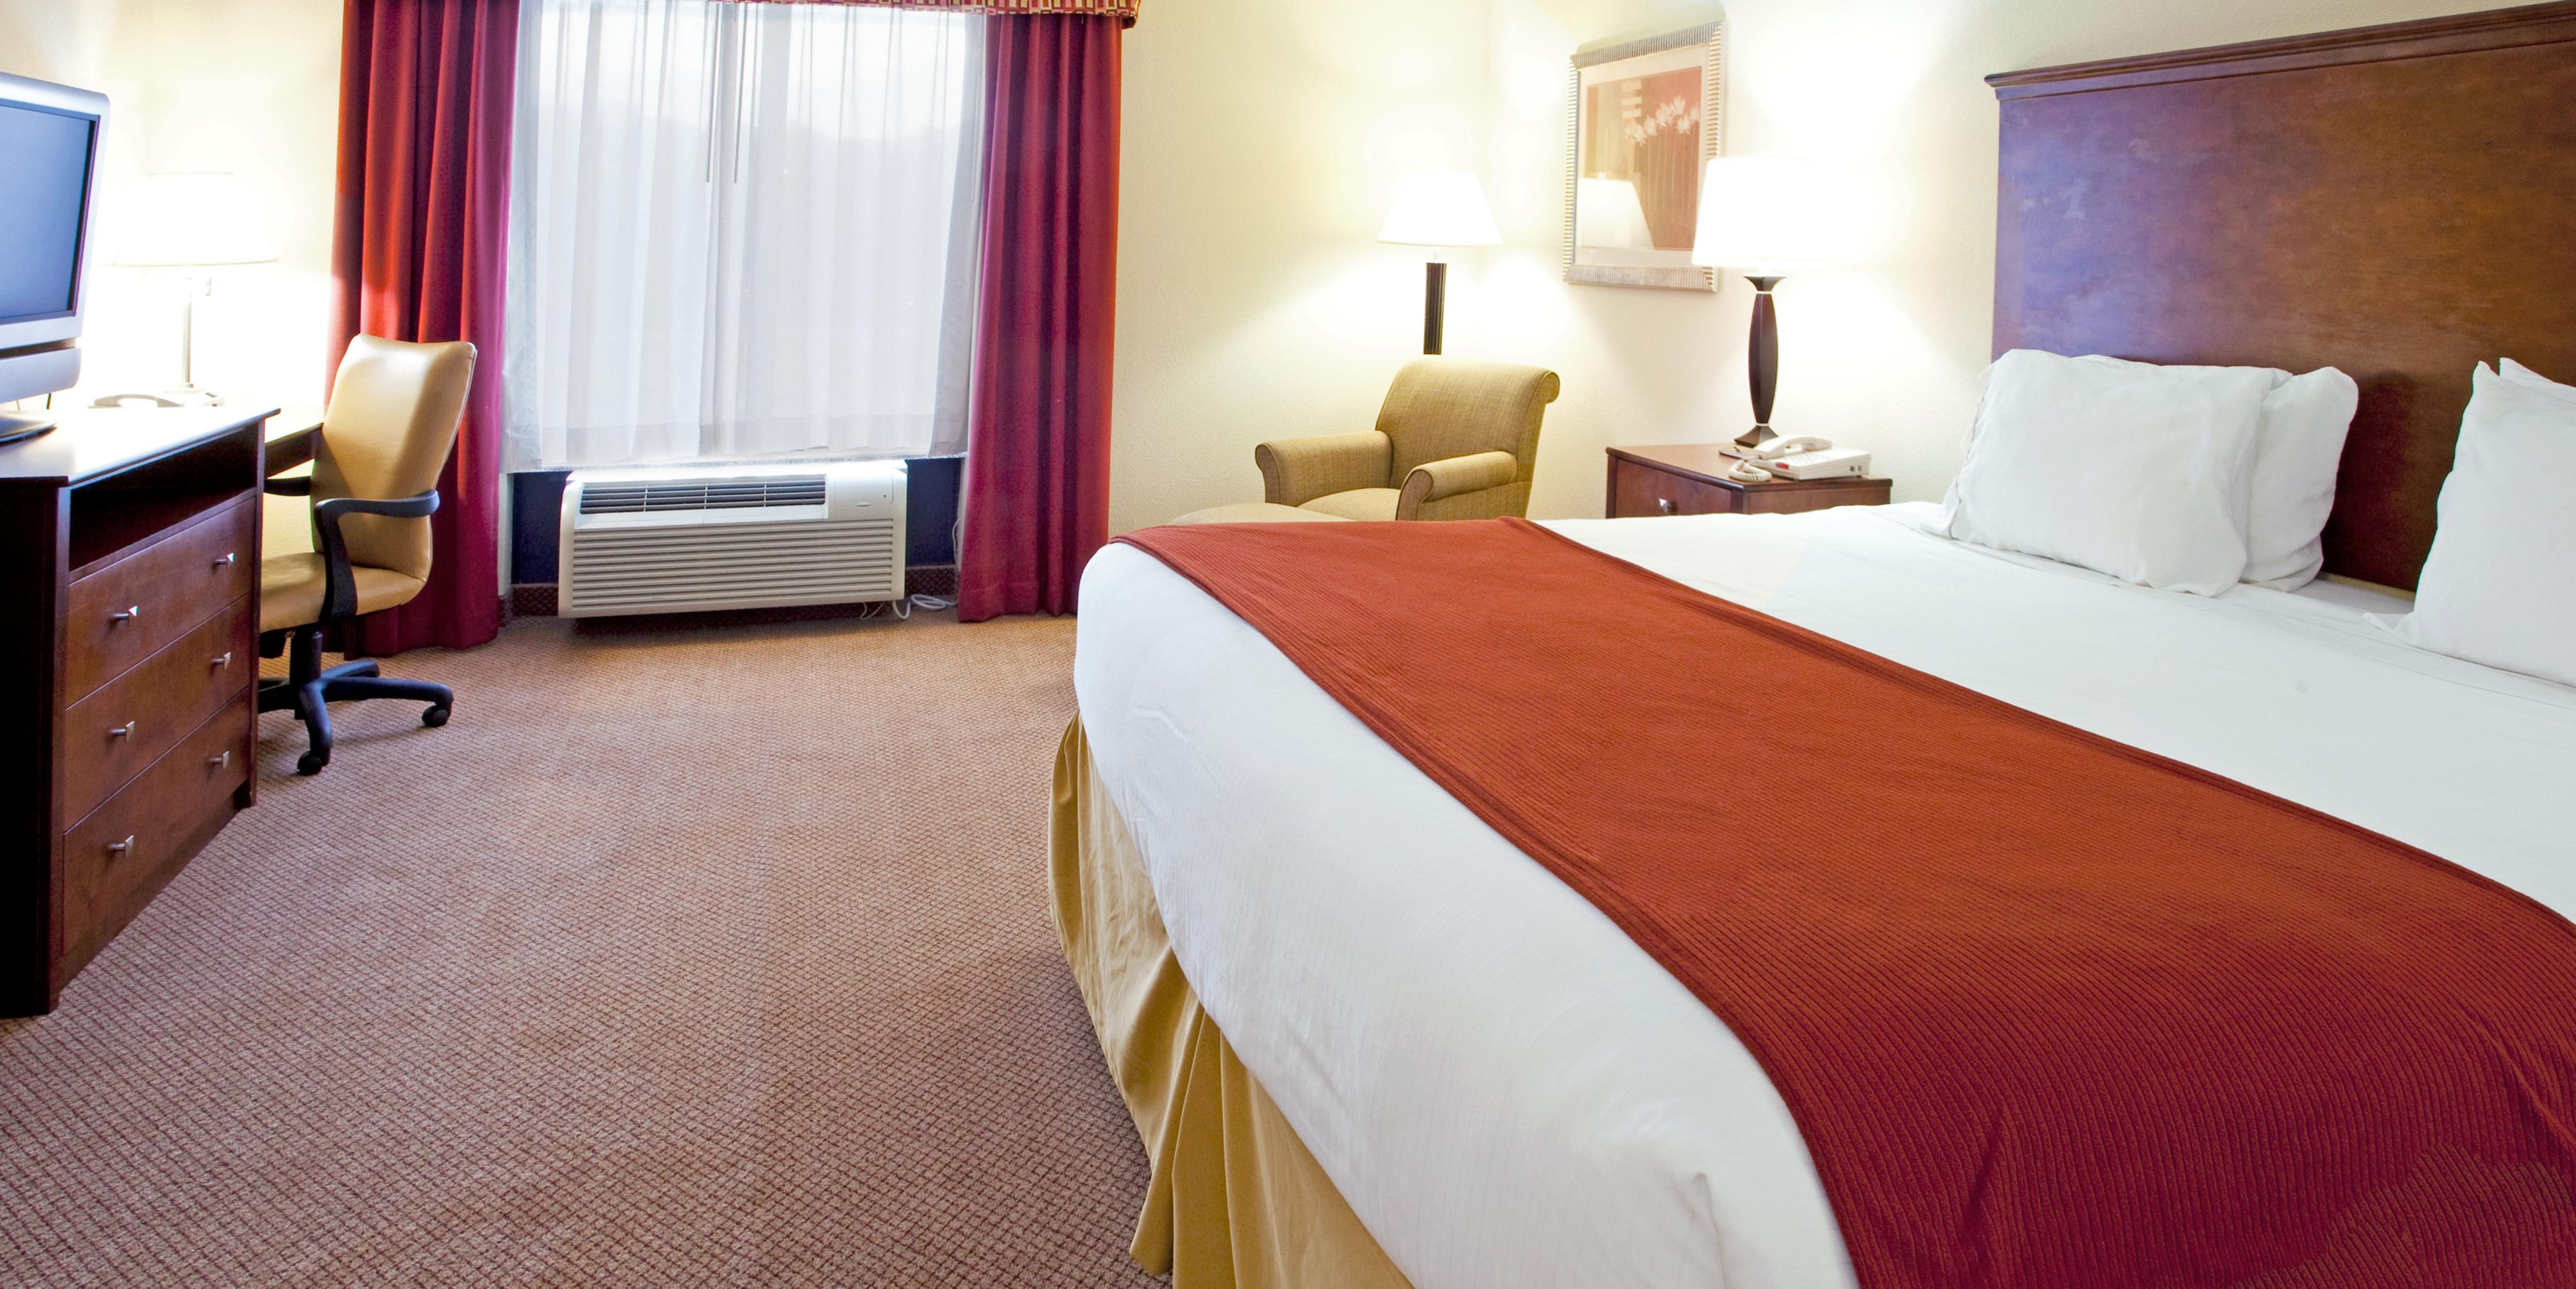 Holiday Inn Express & Suites Quincy I 10 Hotel by IHG